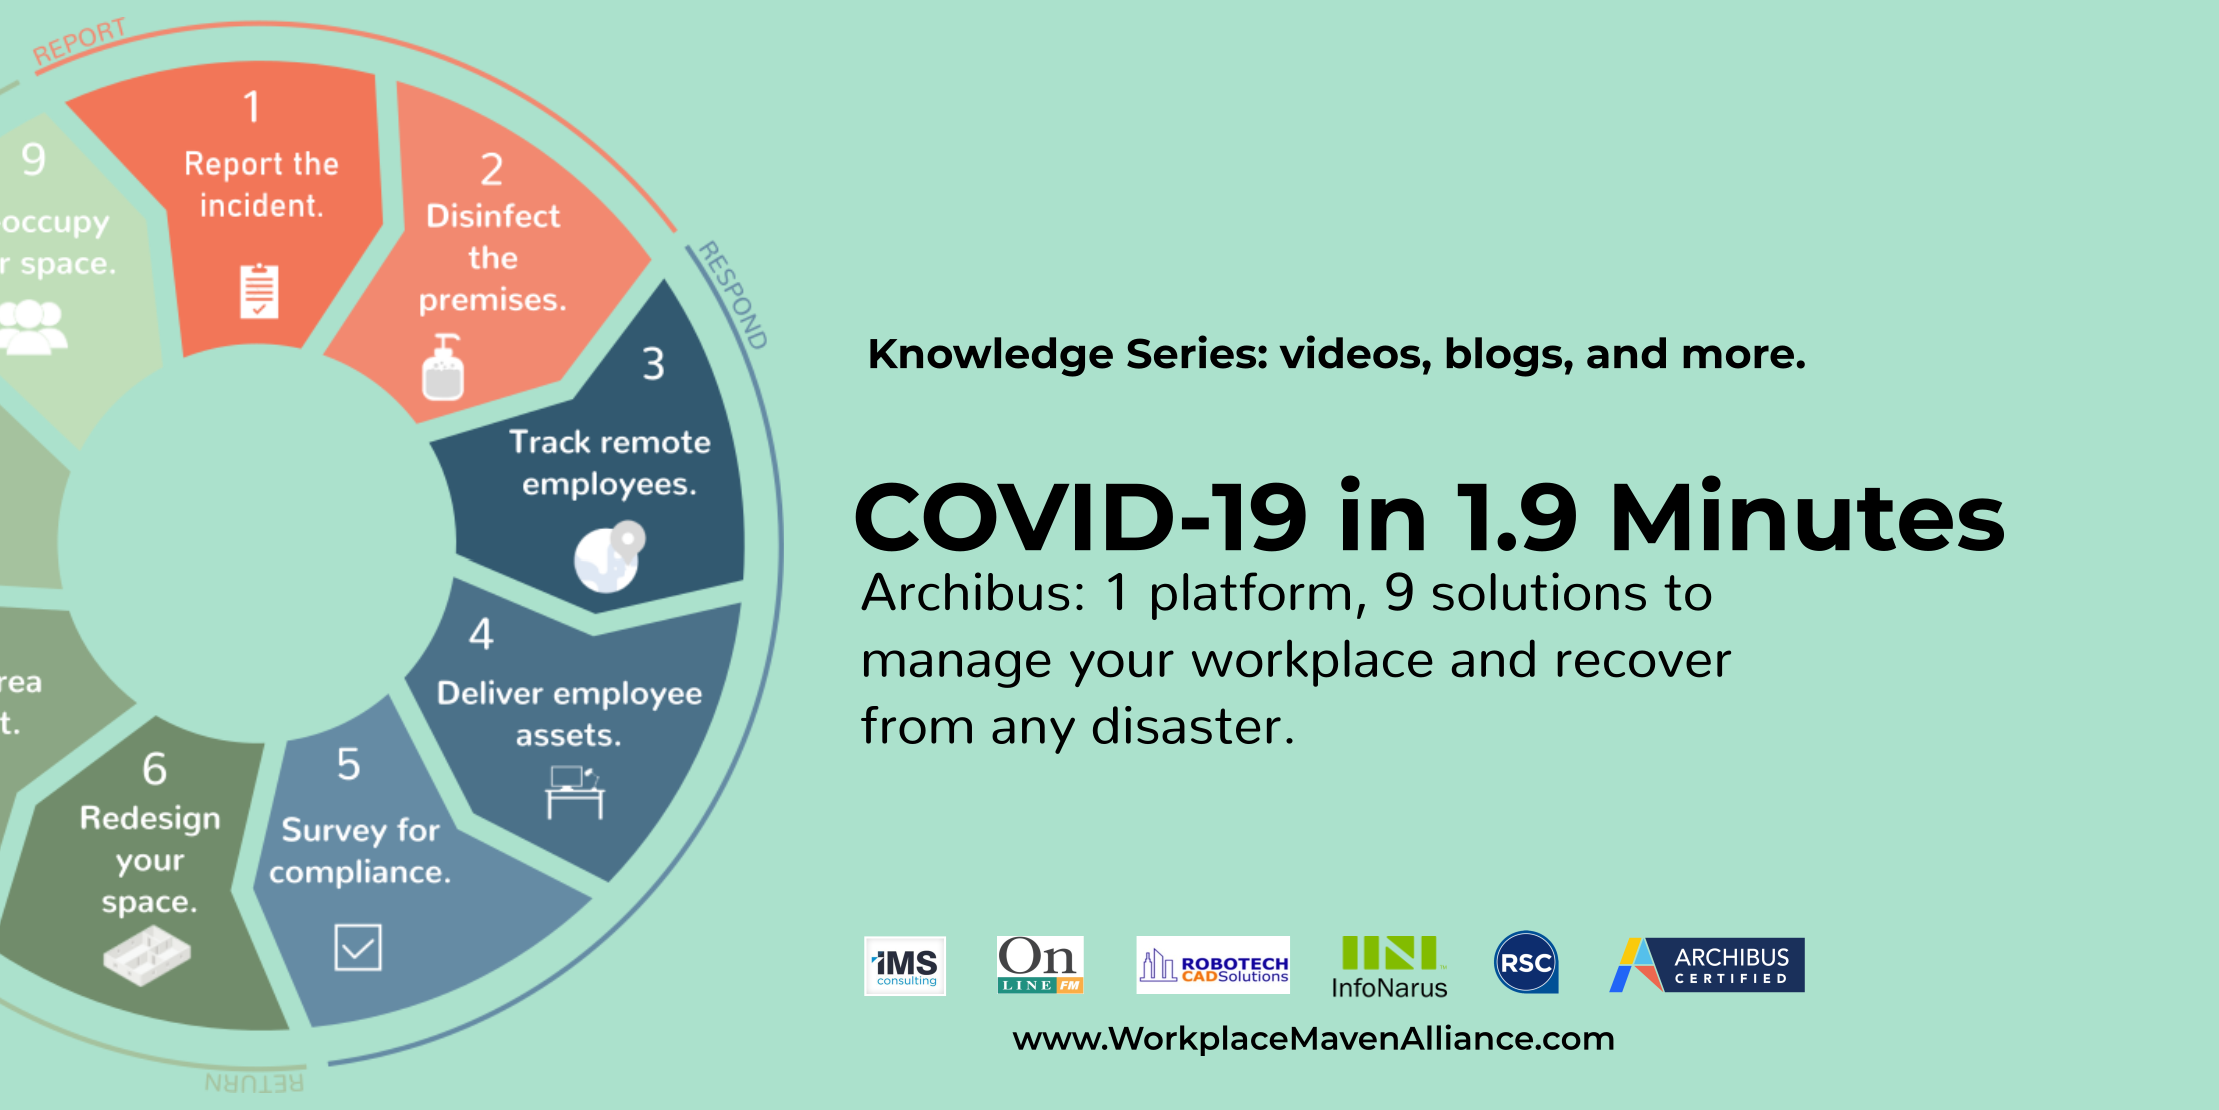 COVID-19 in 1.9 Minutes: the nine stages of how to track coronavirus in Archibus.